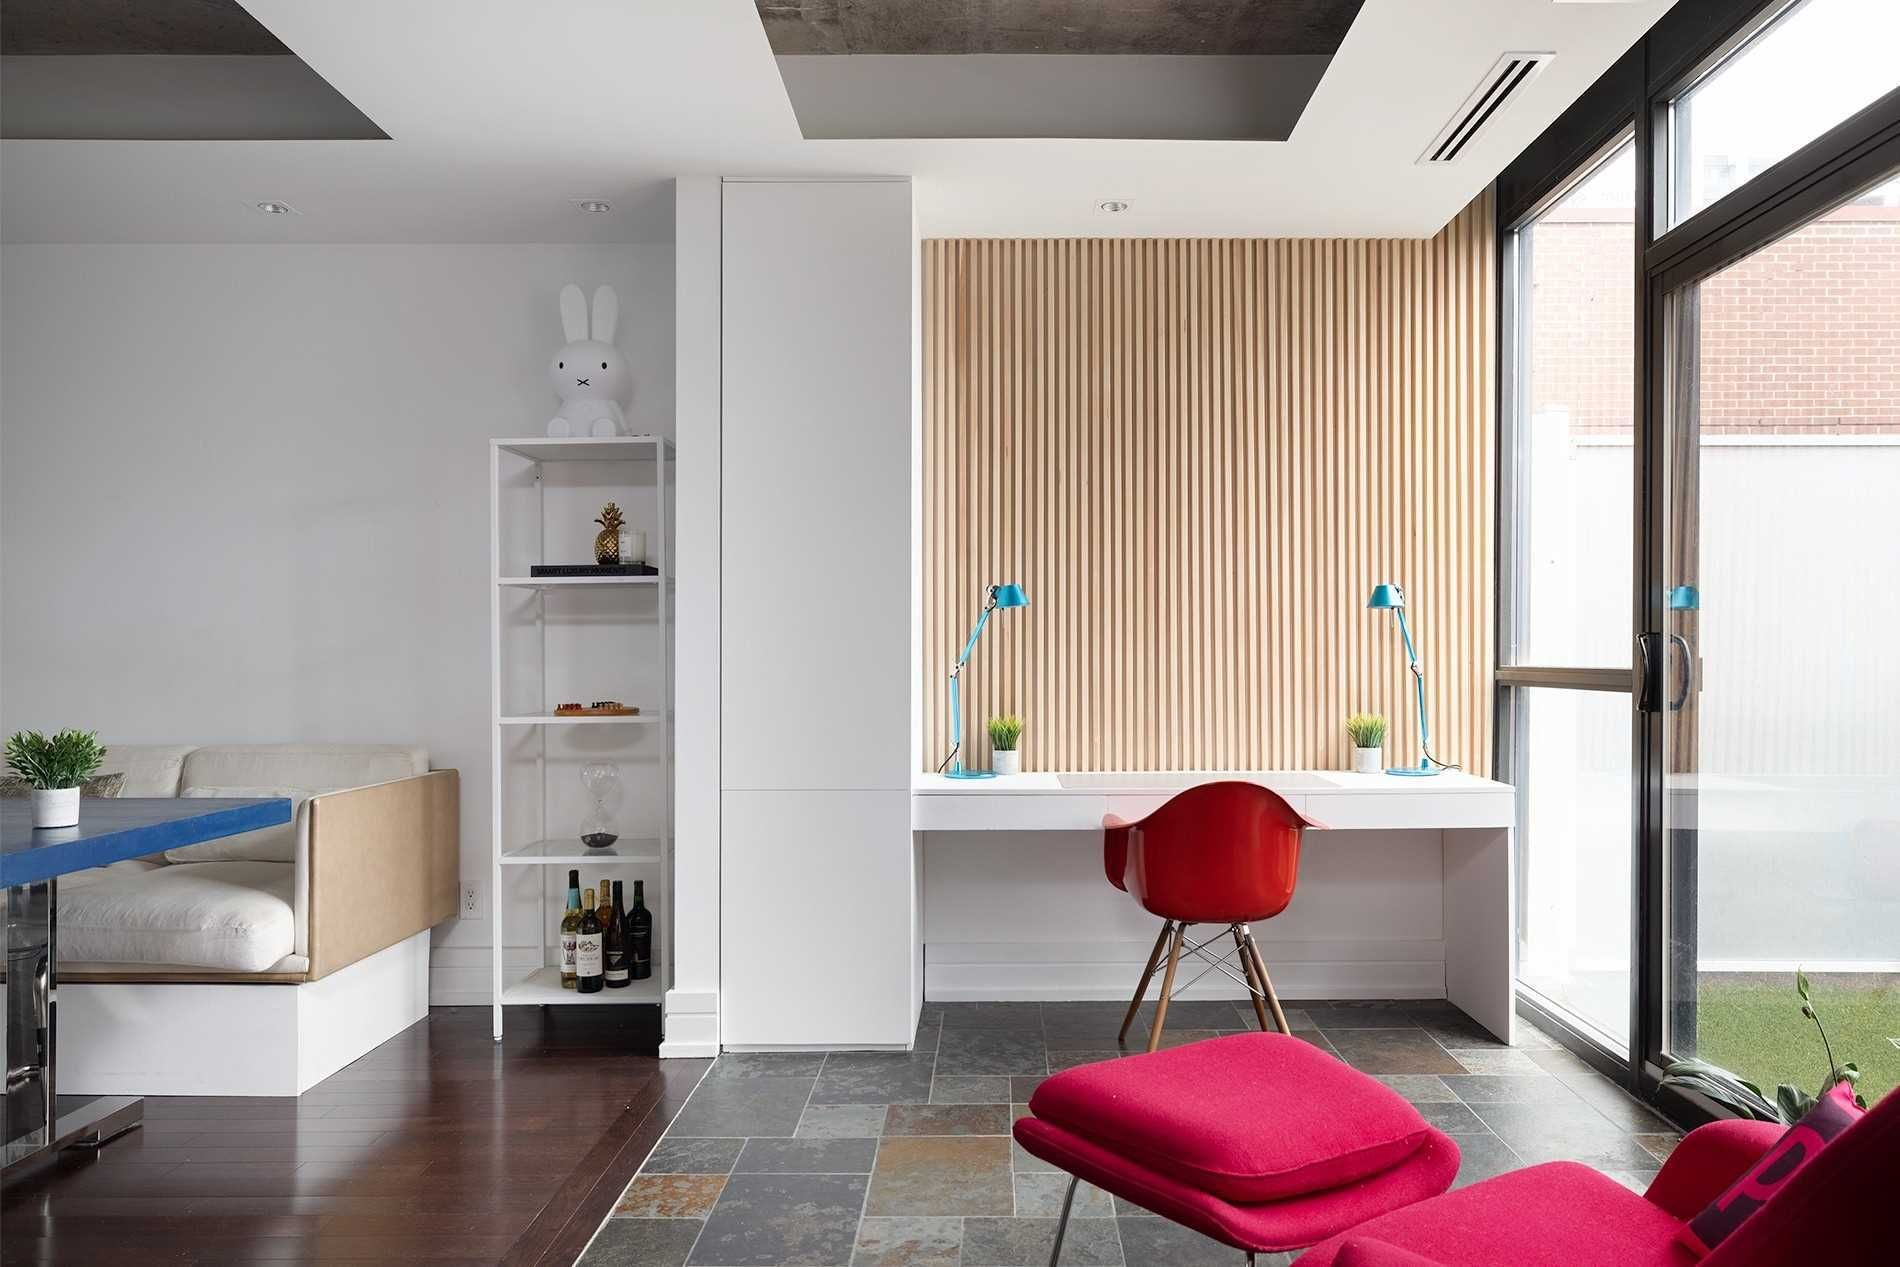 64 Niagara St, unit 521 for sale in Toronto - image #1